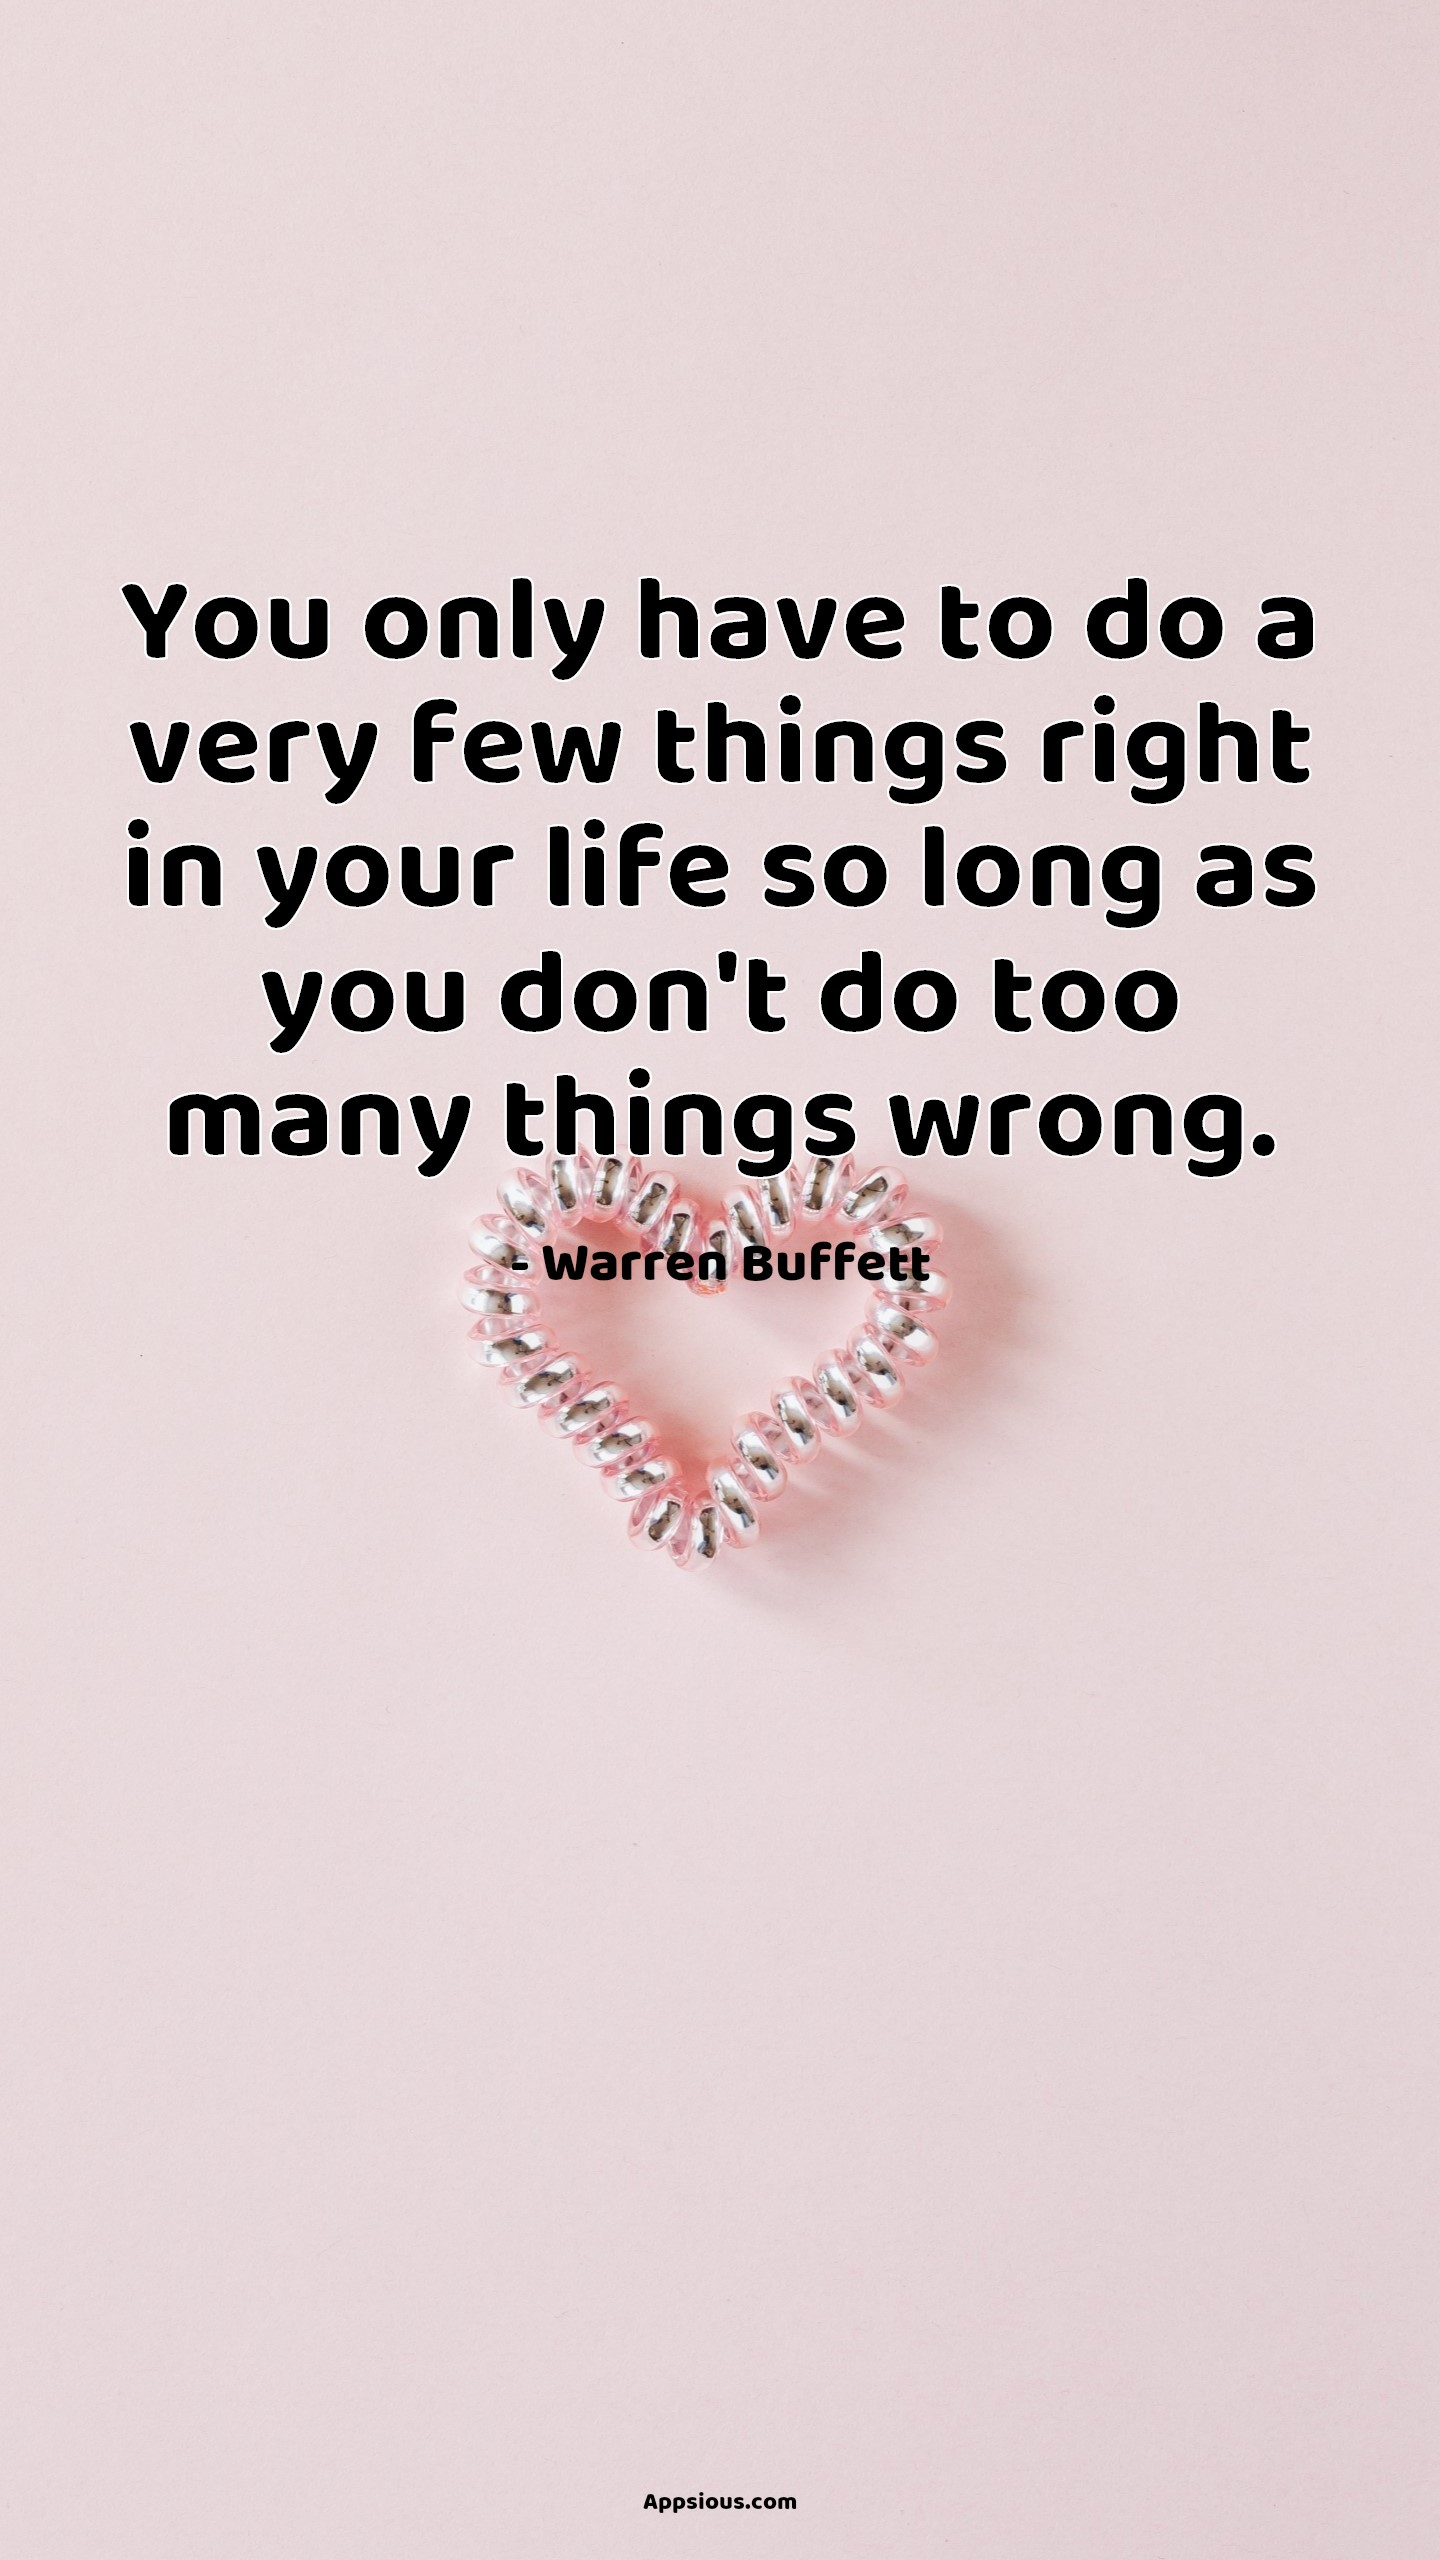 You only have to do a very few things right in your life so long as you don't do too many things wrong.